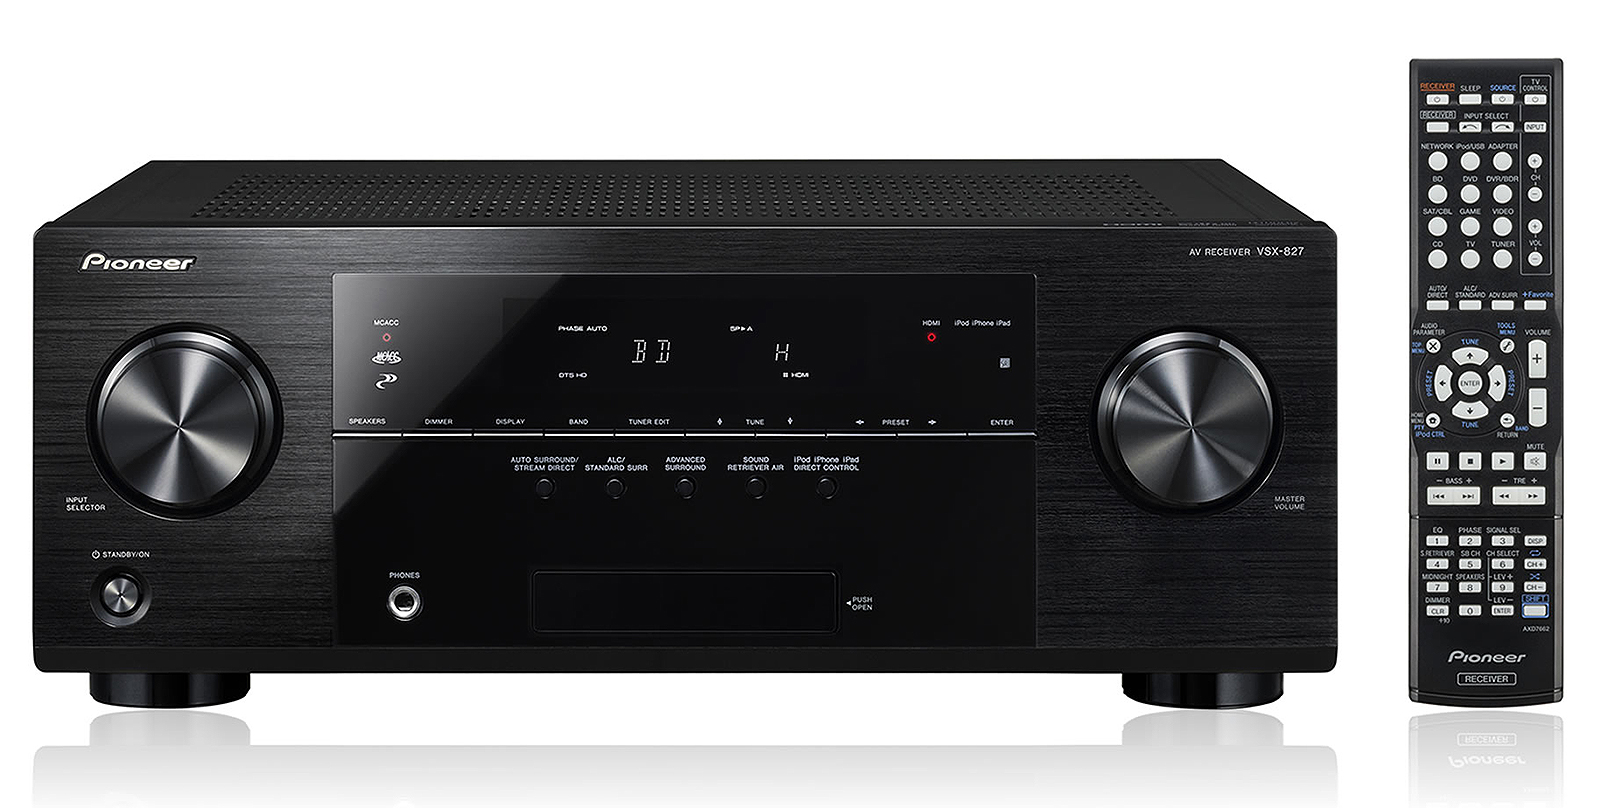 av ресивер harman kardon avr 70 инструкция на русском